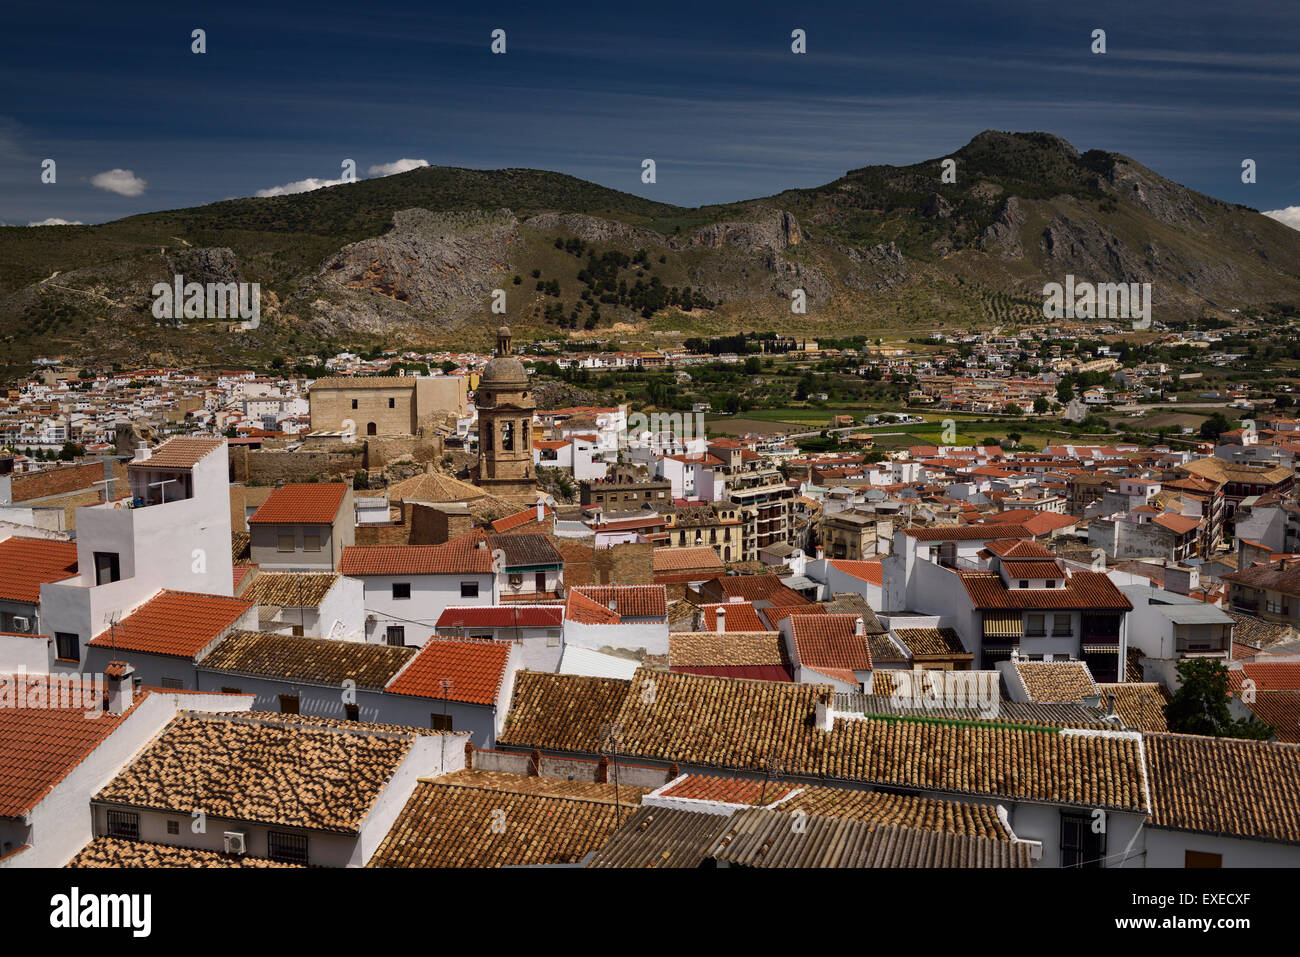 Overview of rooftop tiles with Church of the Incarnation and Gorda Peak at Loja Granada Spain - Stock Image